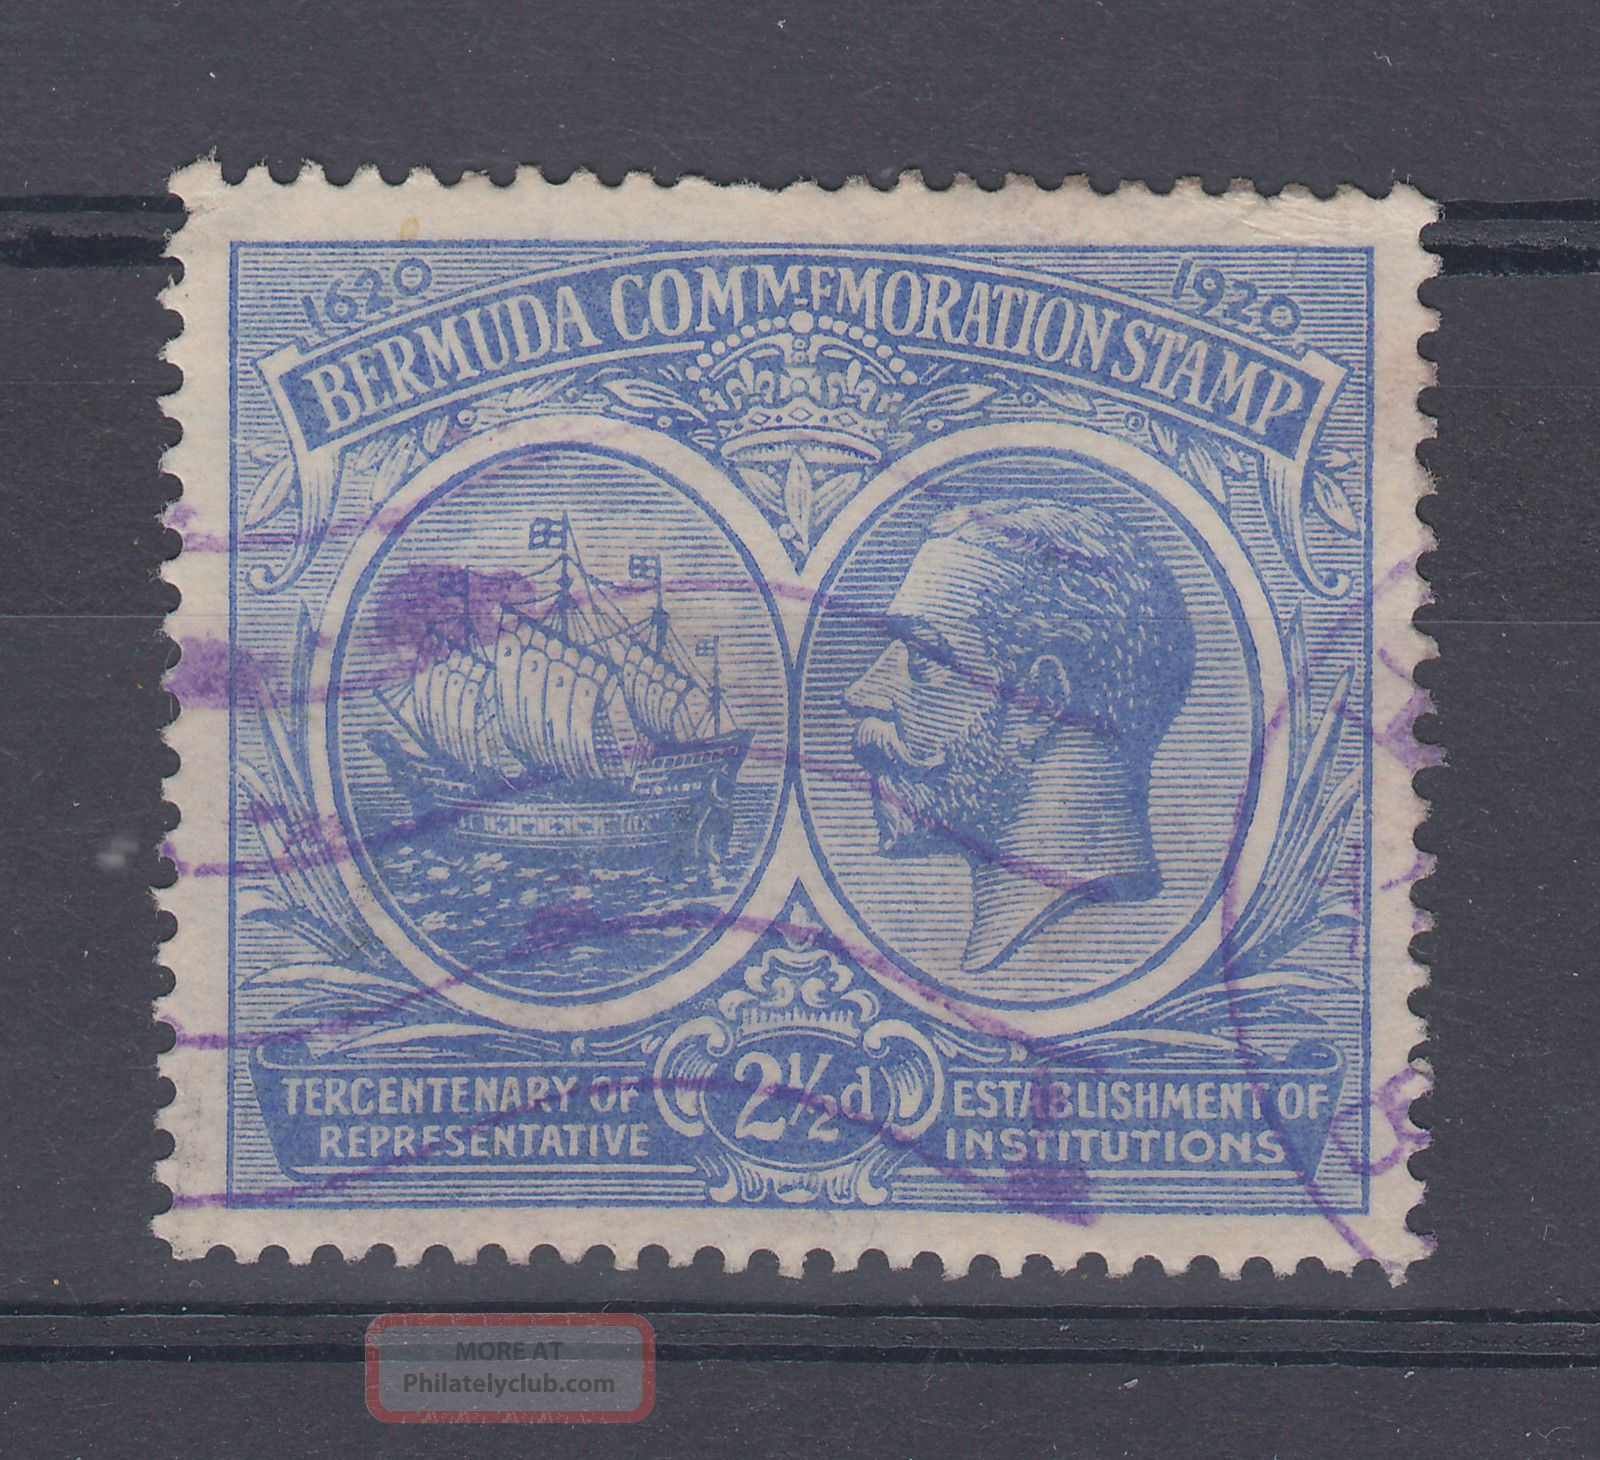 1920 Bermuda 2.  5d Tercentenary Stamp (sg 66) British Colonies & Territories photo